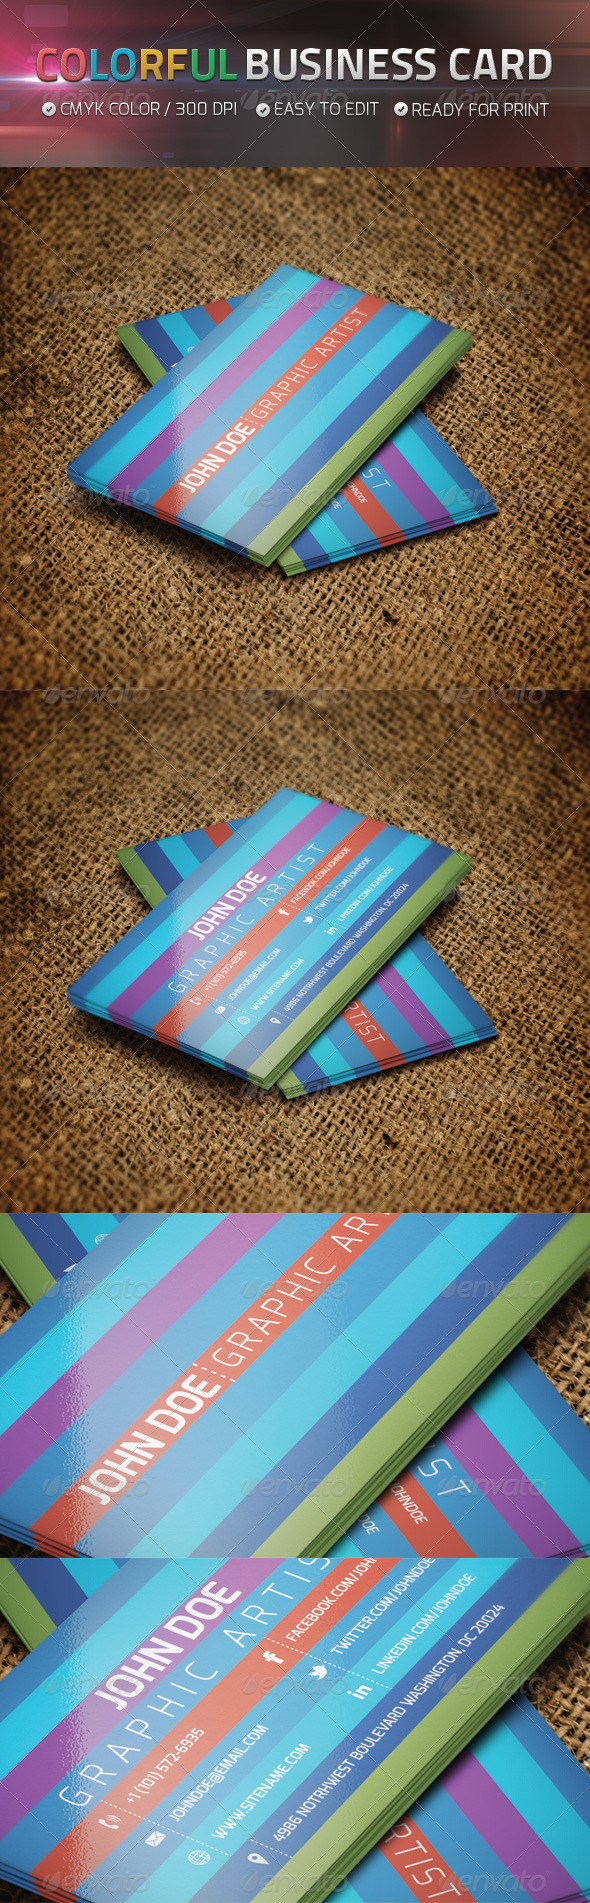 Colorful Business Card V5 - Business Cards Print Templates